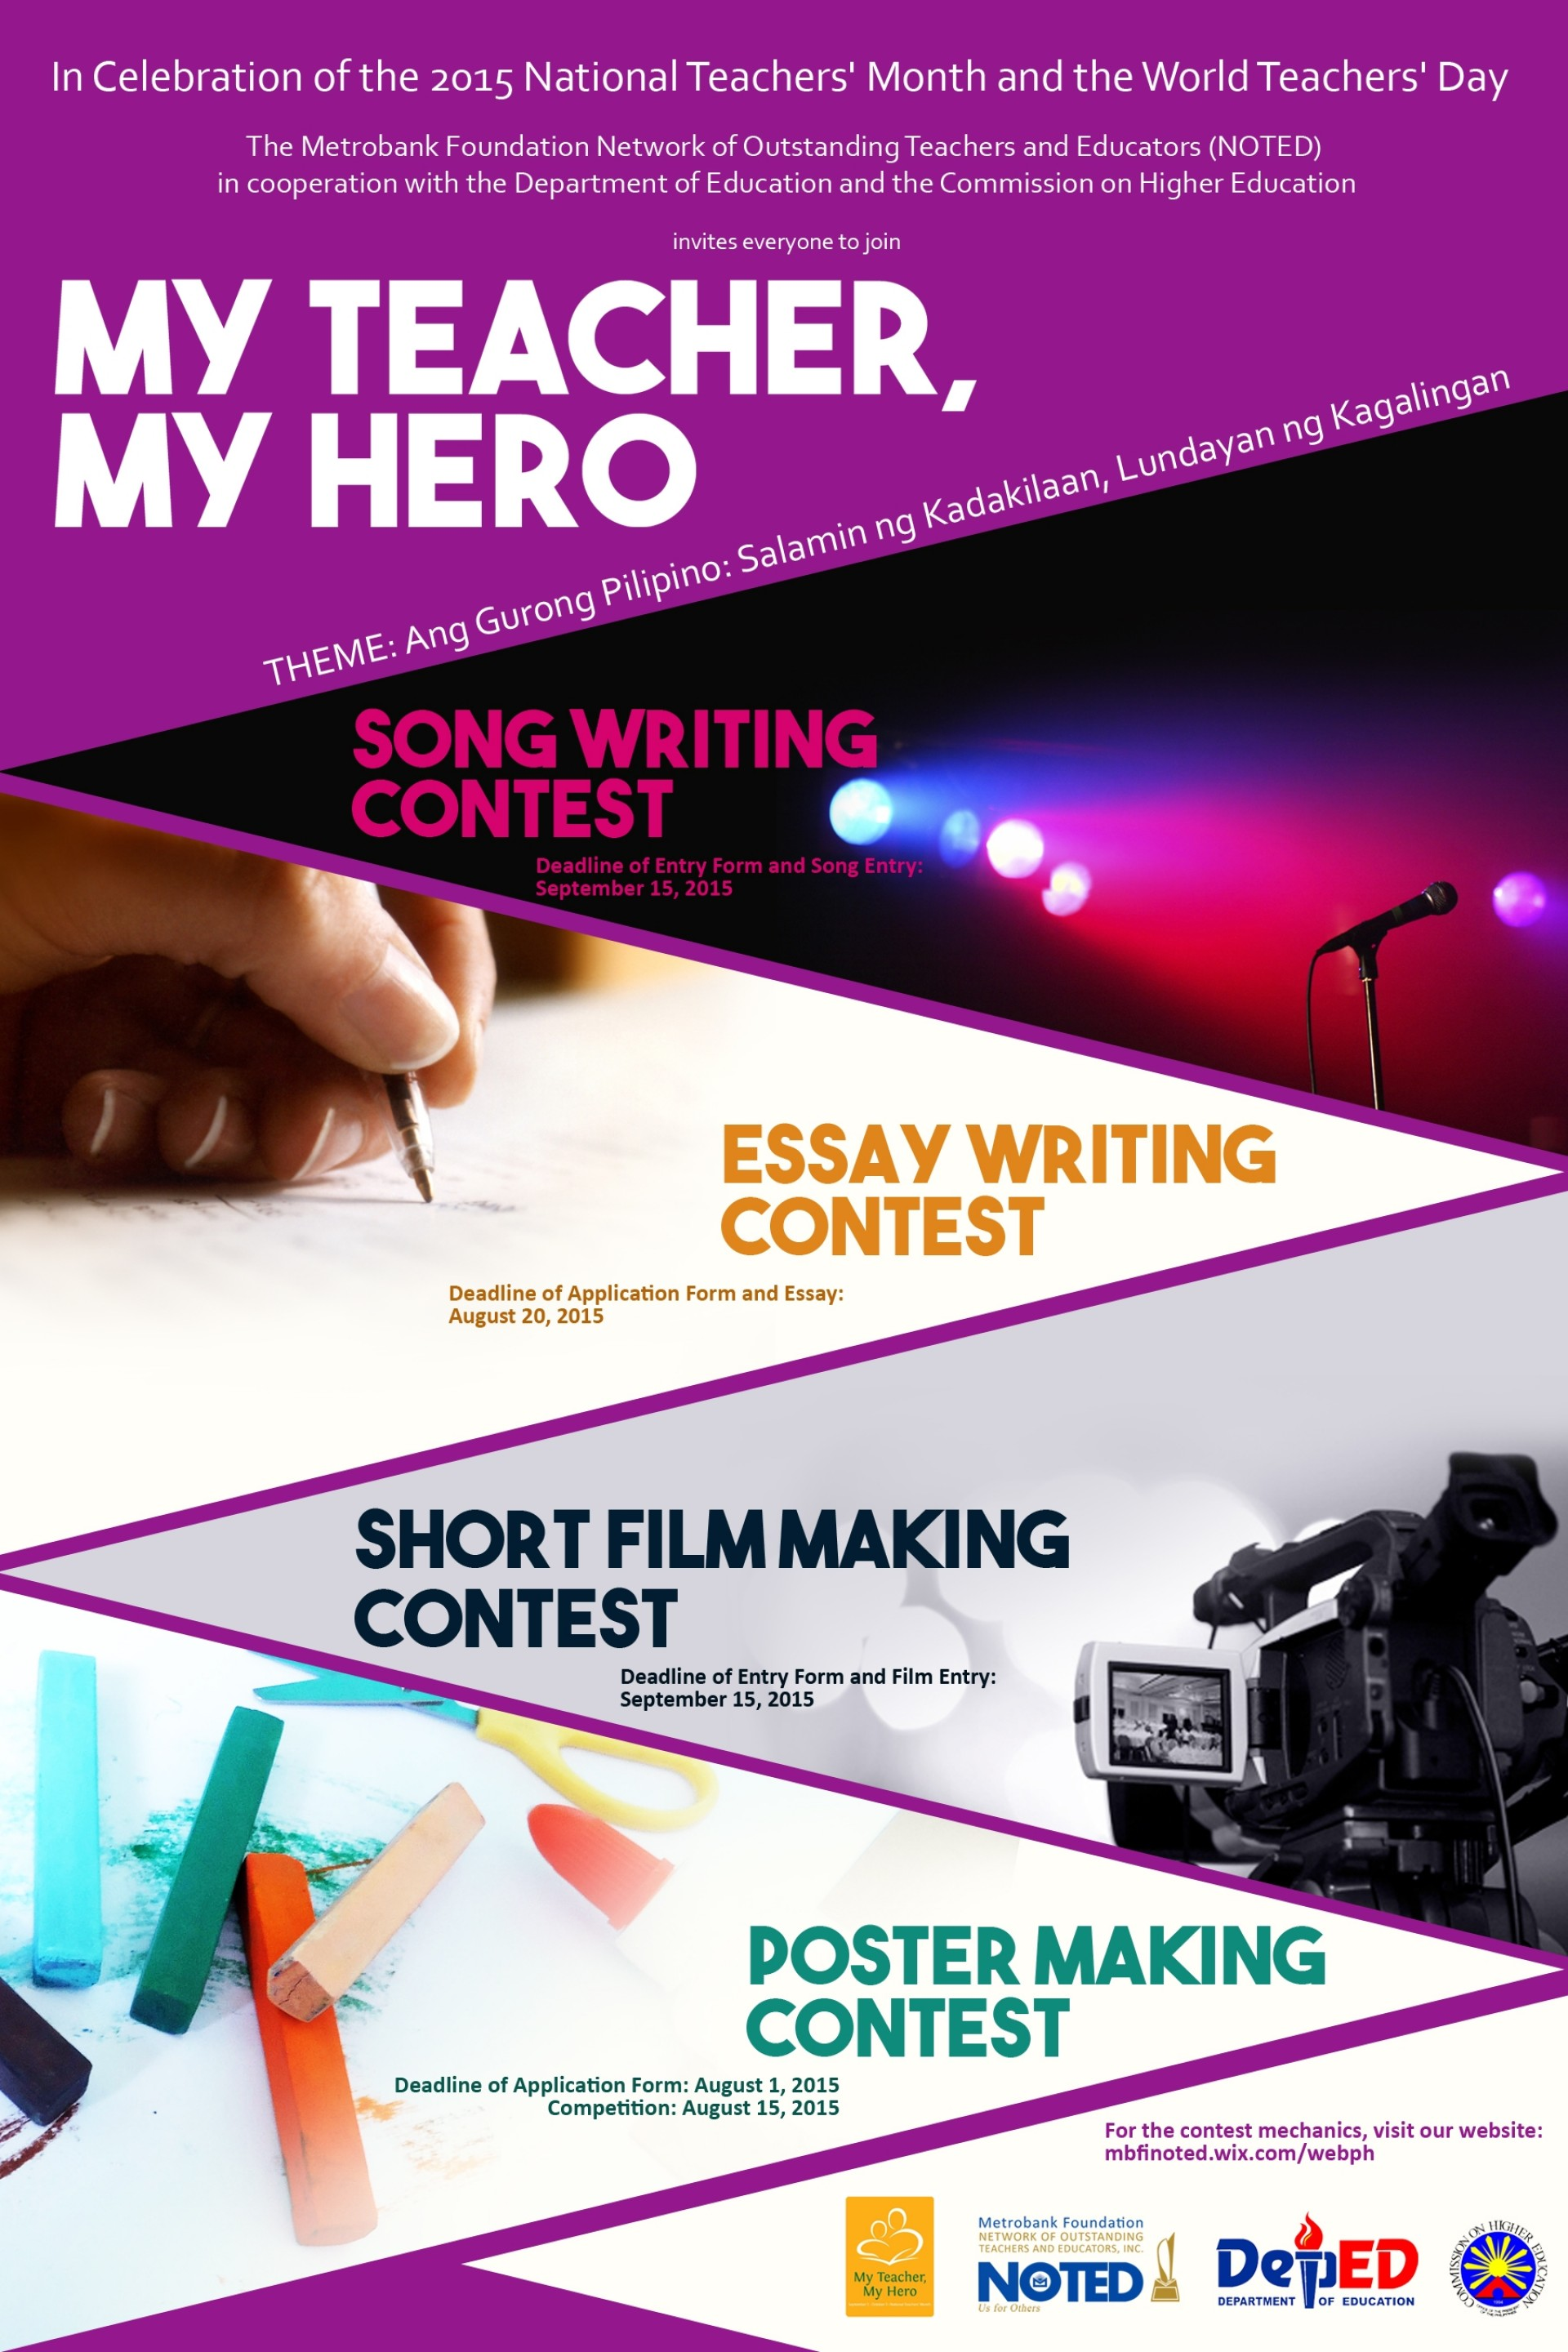 023 Essay Example Writing Contest 9bbb33 E6d36ee02b654f79801806f311facf4a Incredible Free Contests 2018 International Competitions For High School Students India 1920